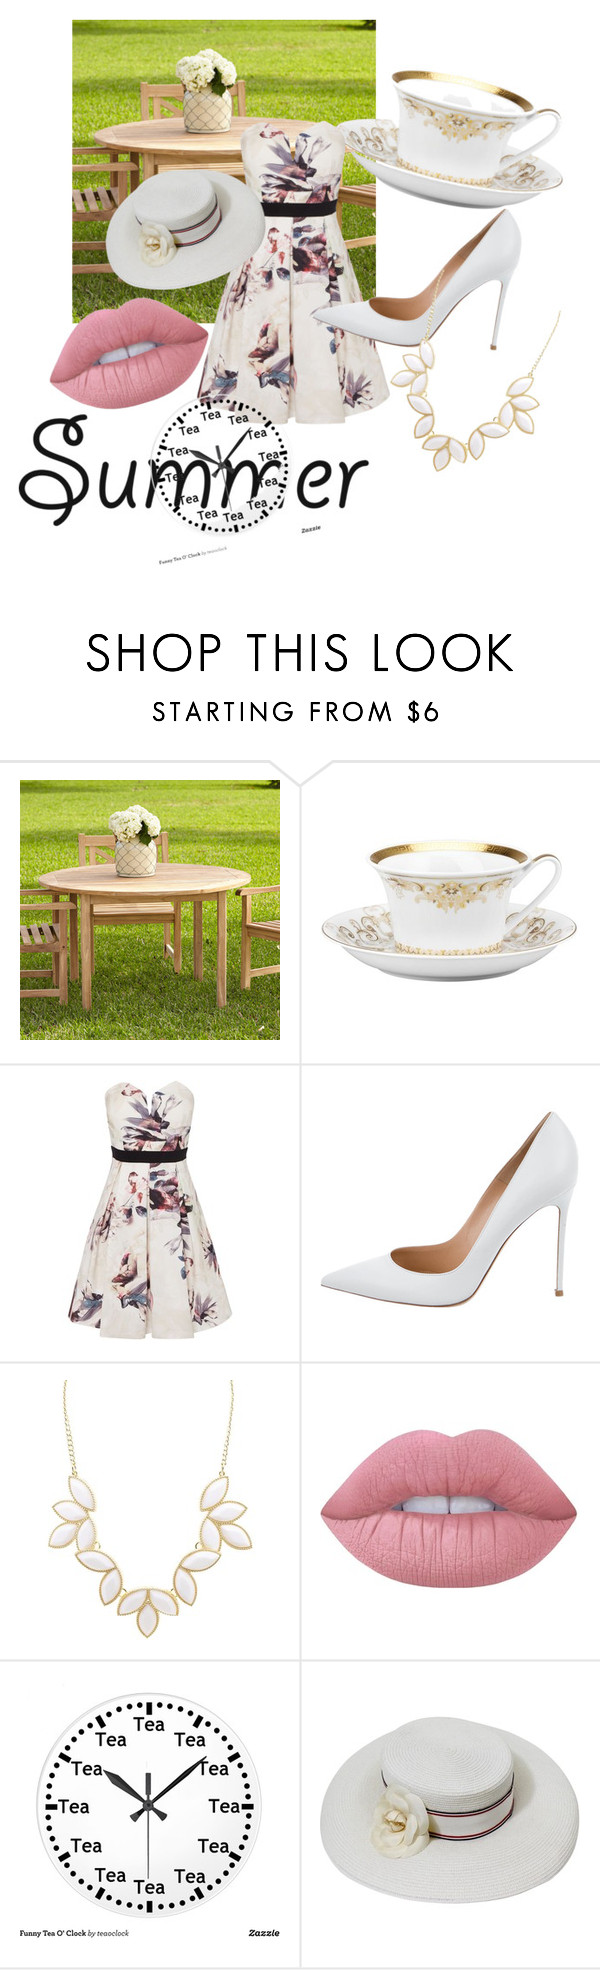 """TeaTeaTea☕"" by kandice-marie157 ❤ liked on Polyvore featuring interior, interiors, interior design, home, home decor, interior decorating, Rosenthal, Little Mistress, Gianvito Rossi and Charlotte Russe"